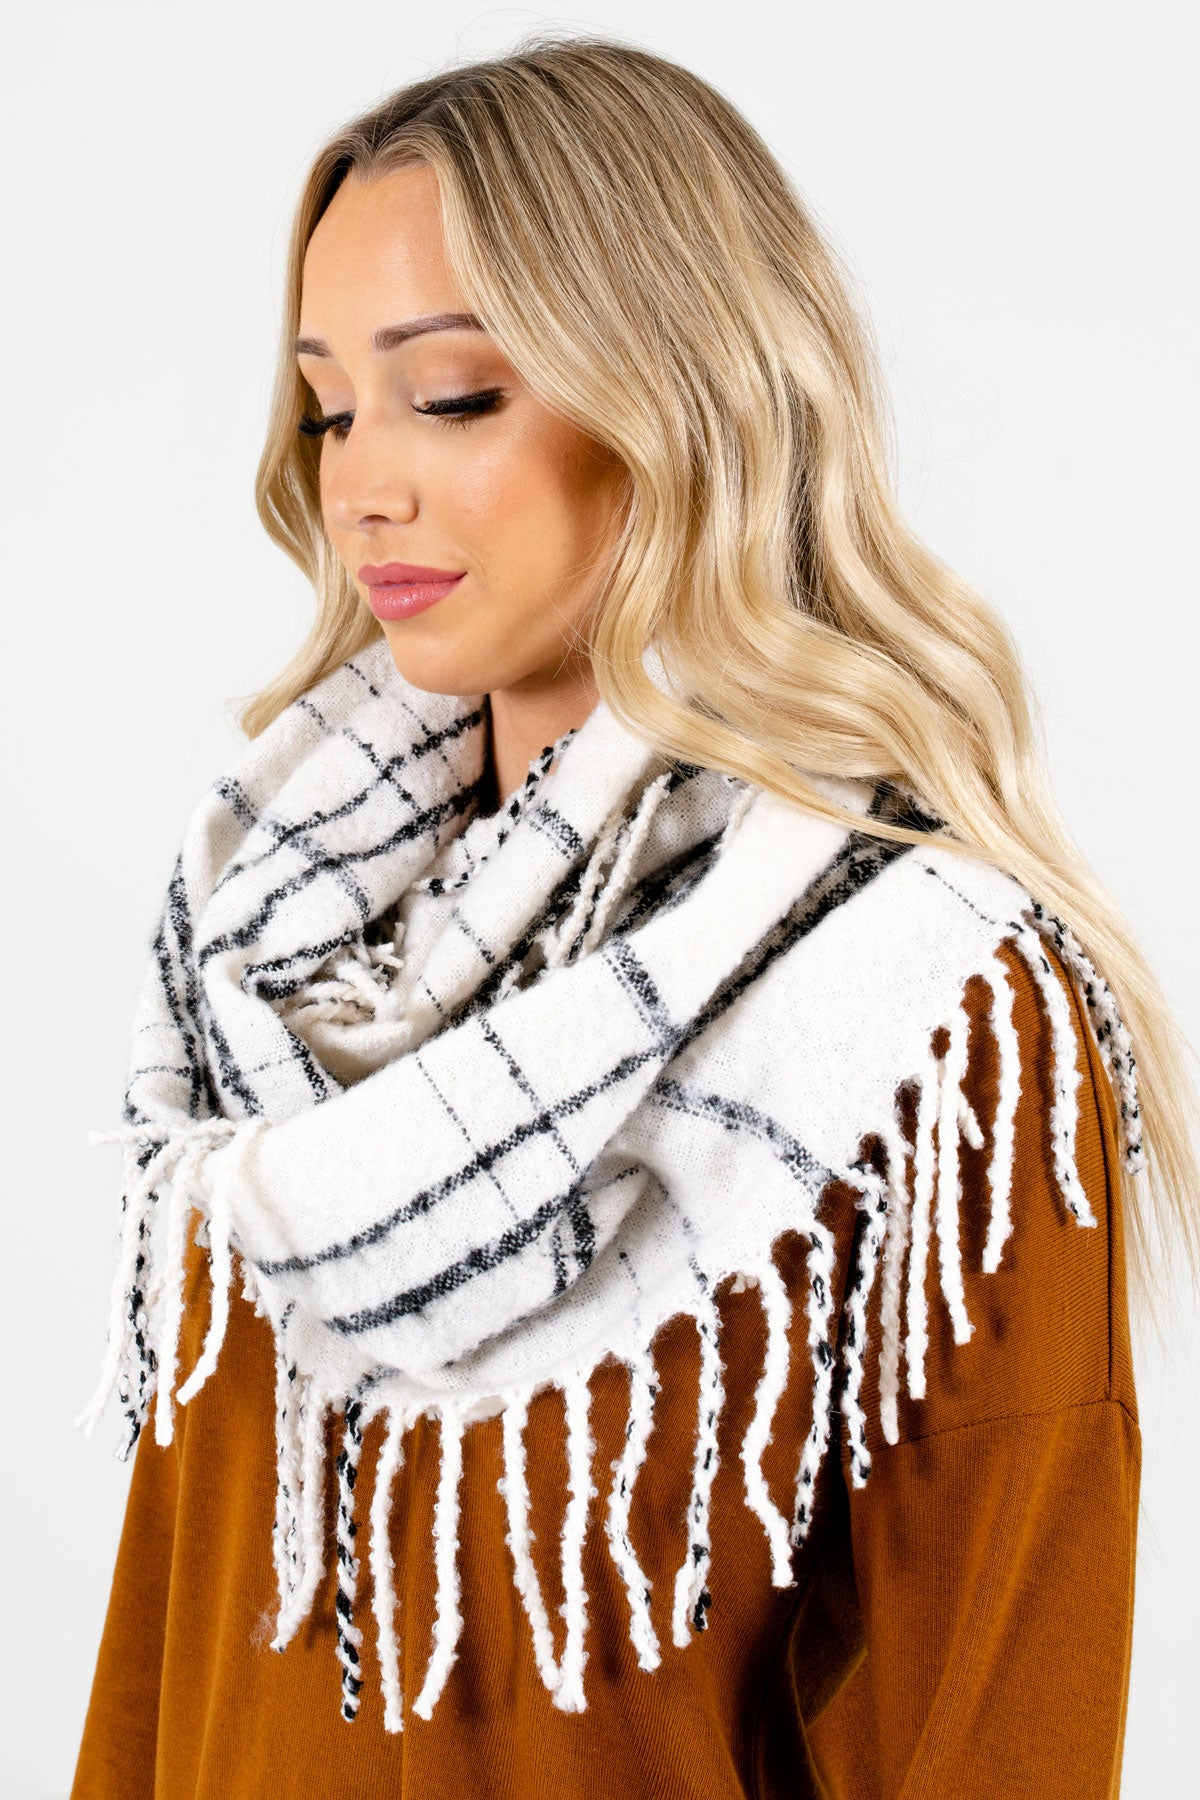 White and Black Plaid Patterned Boutique Scarf for Women